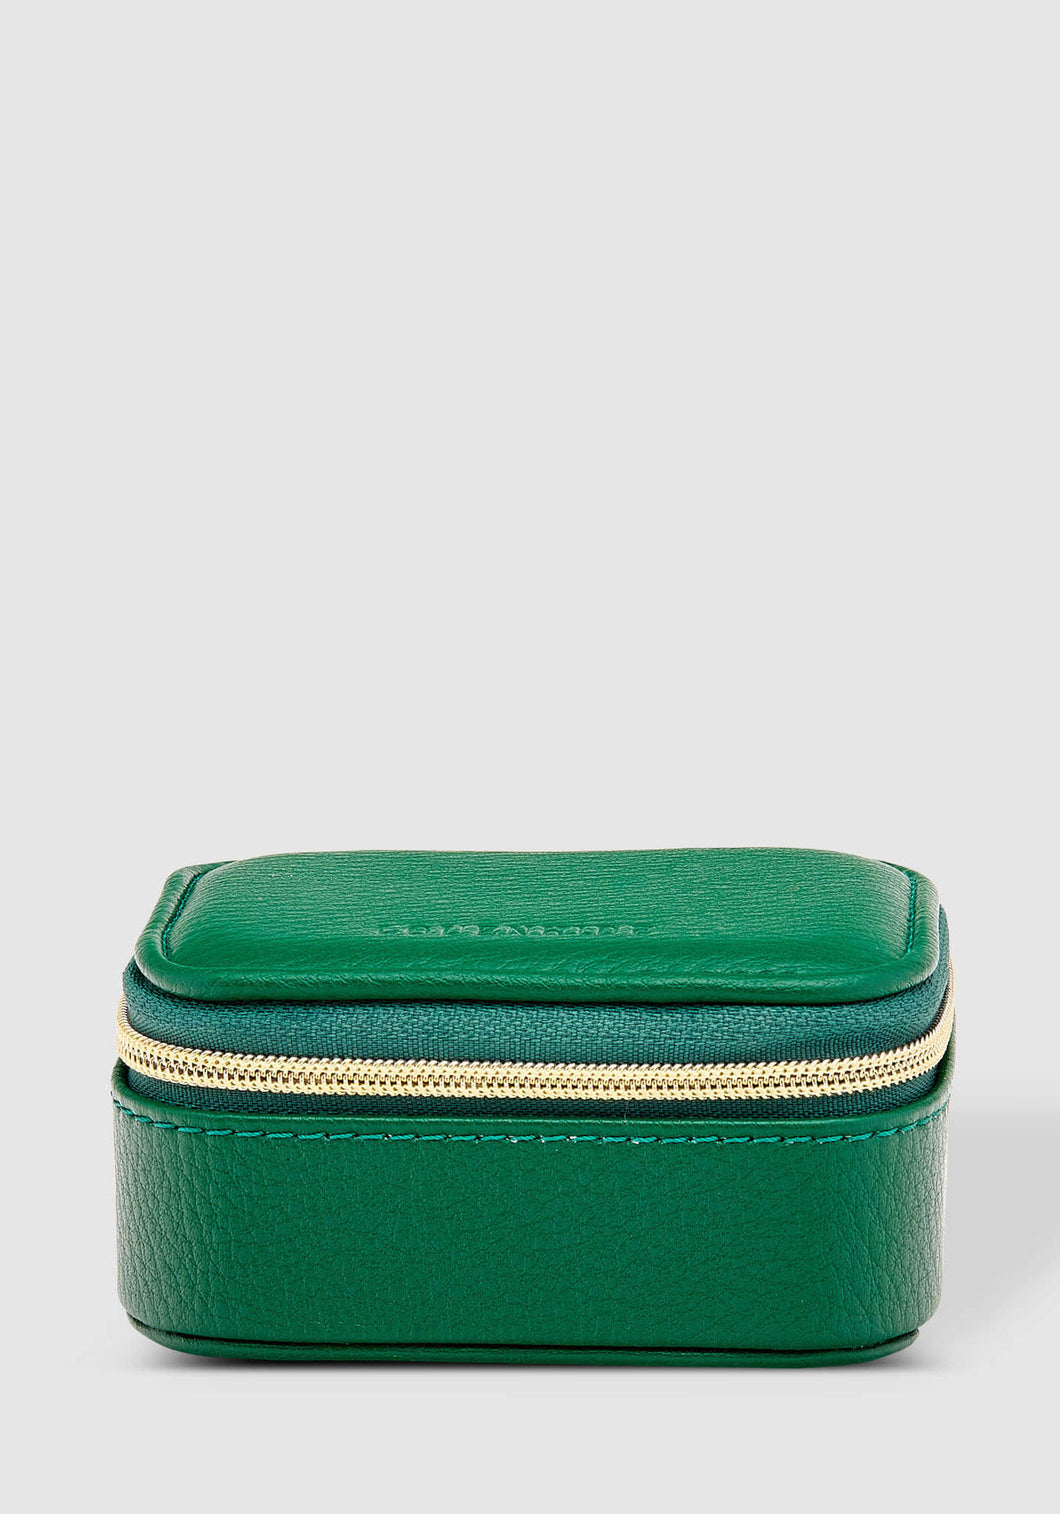 LOUENHIDE SUZIE JEWELLERY BOX - GREEN